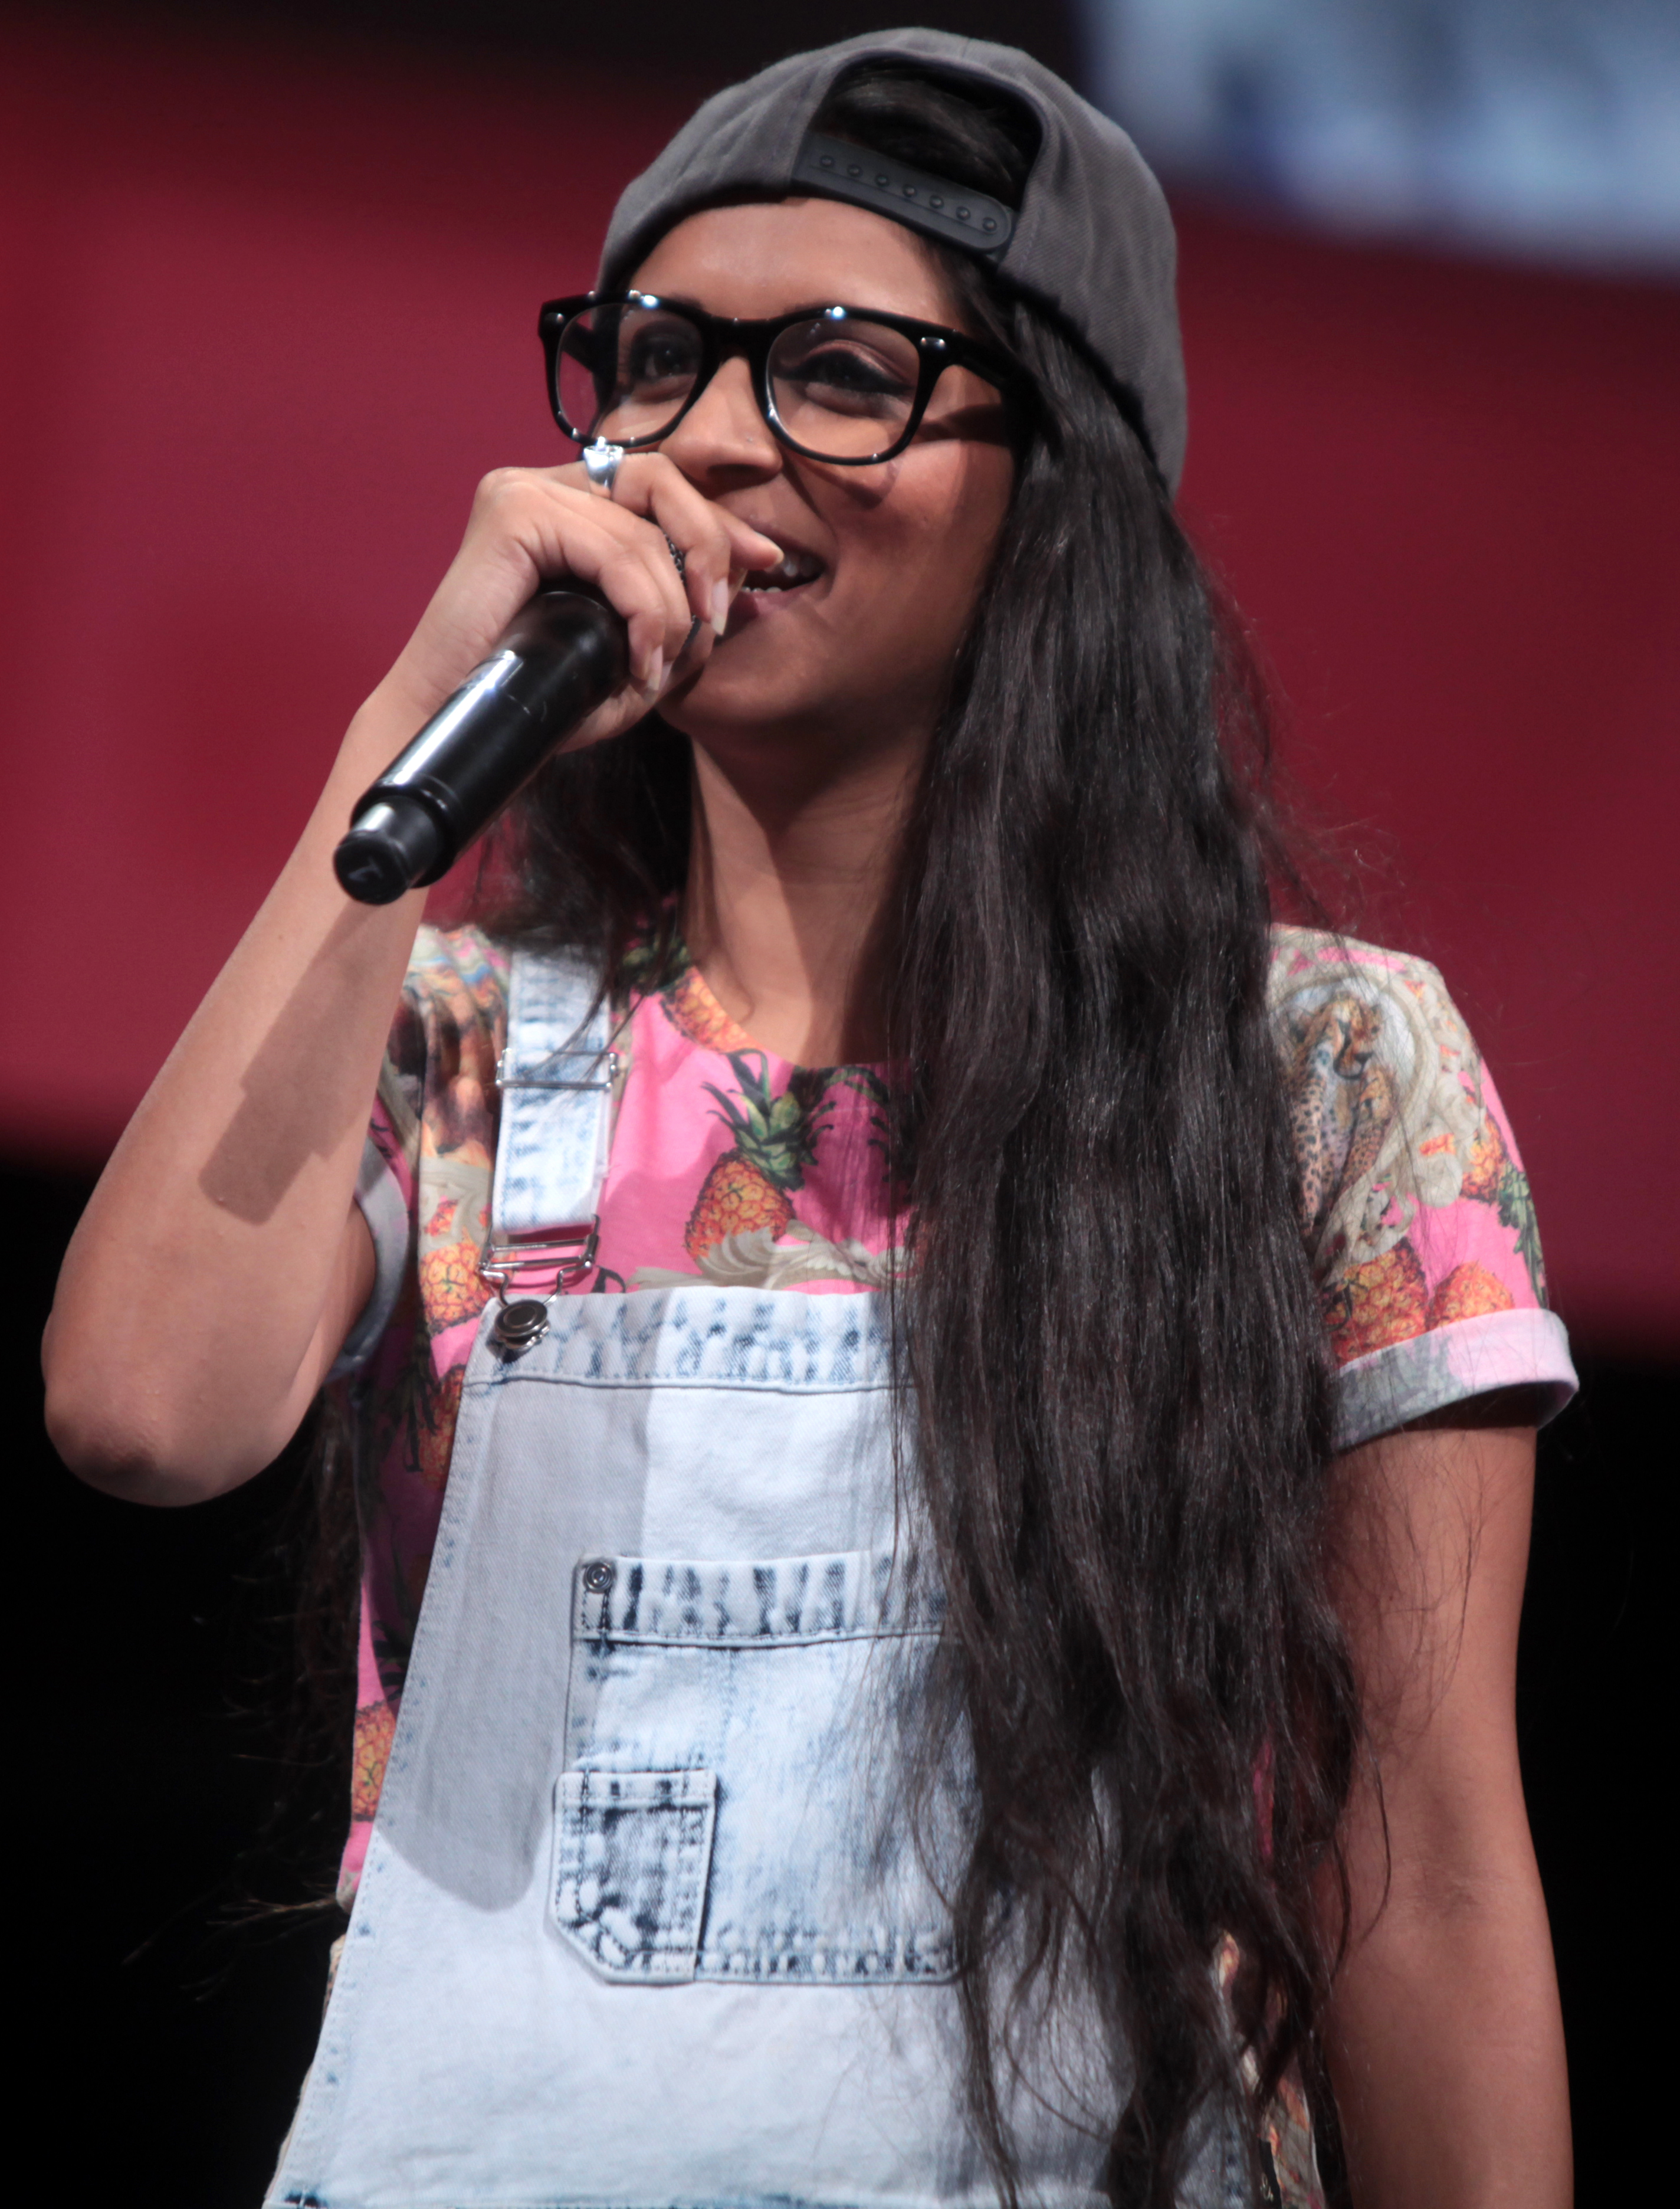 Lilly_Singh_by_Gage_Skidmore Stand-Up Comedians to Book for National Humor Month Events